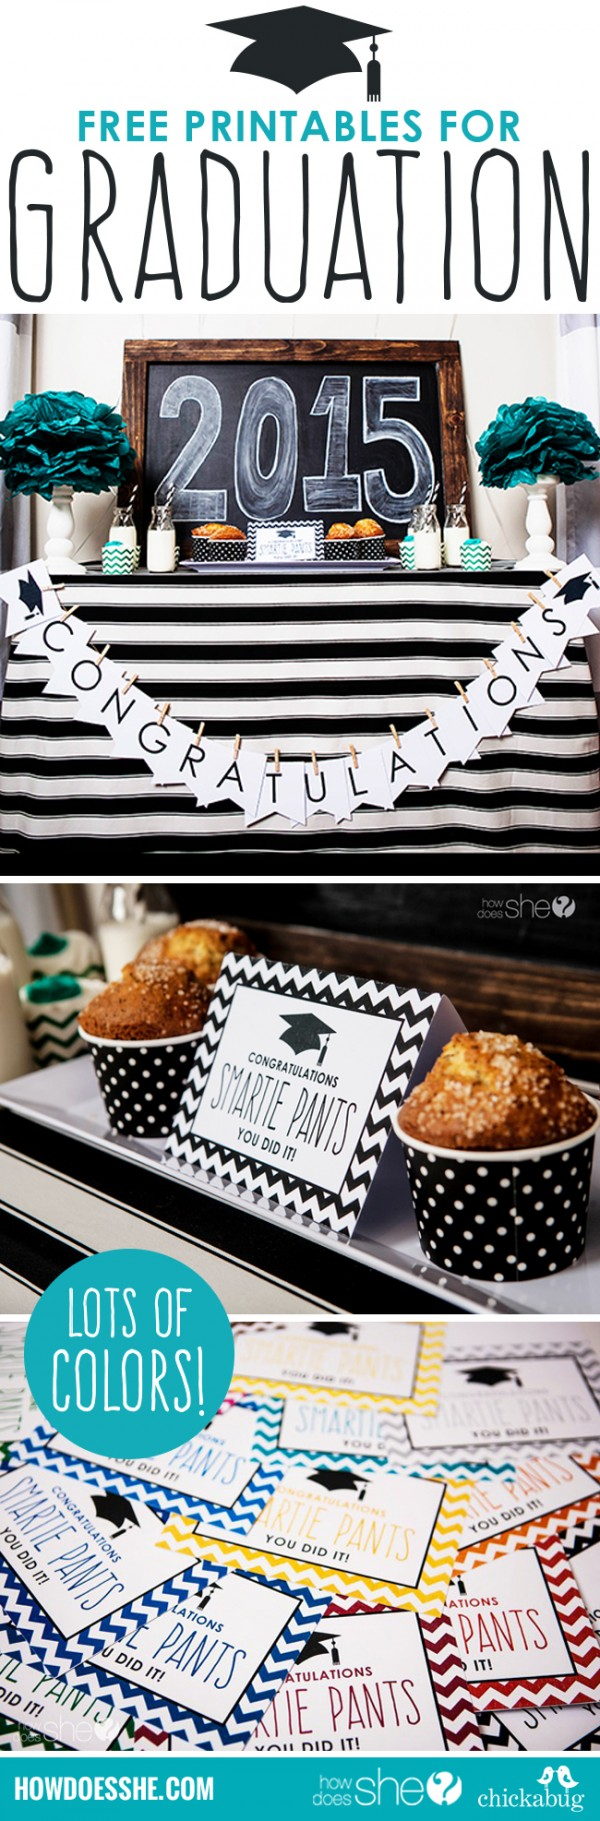 graduation-printables-PINNABLE